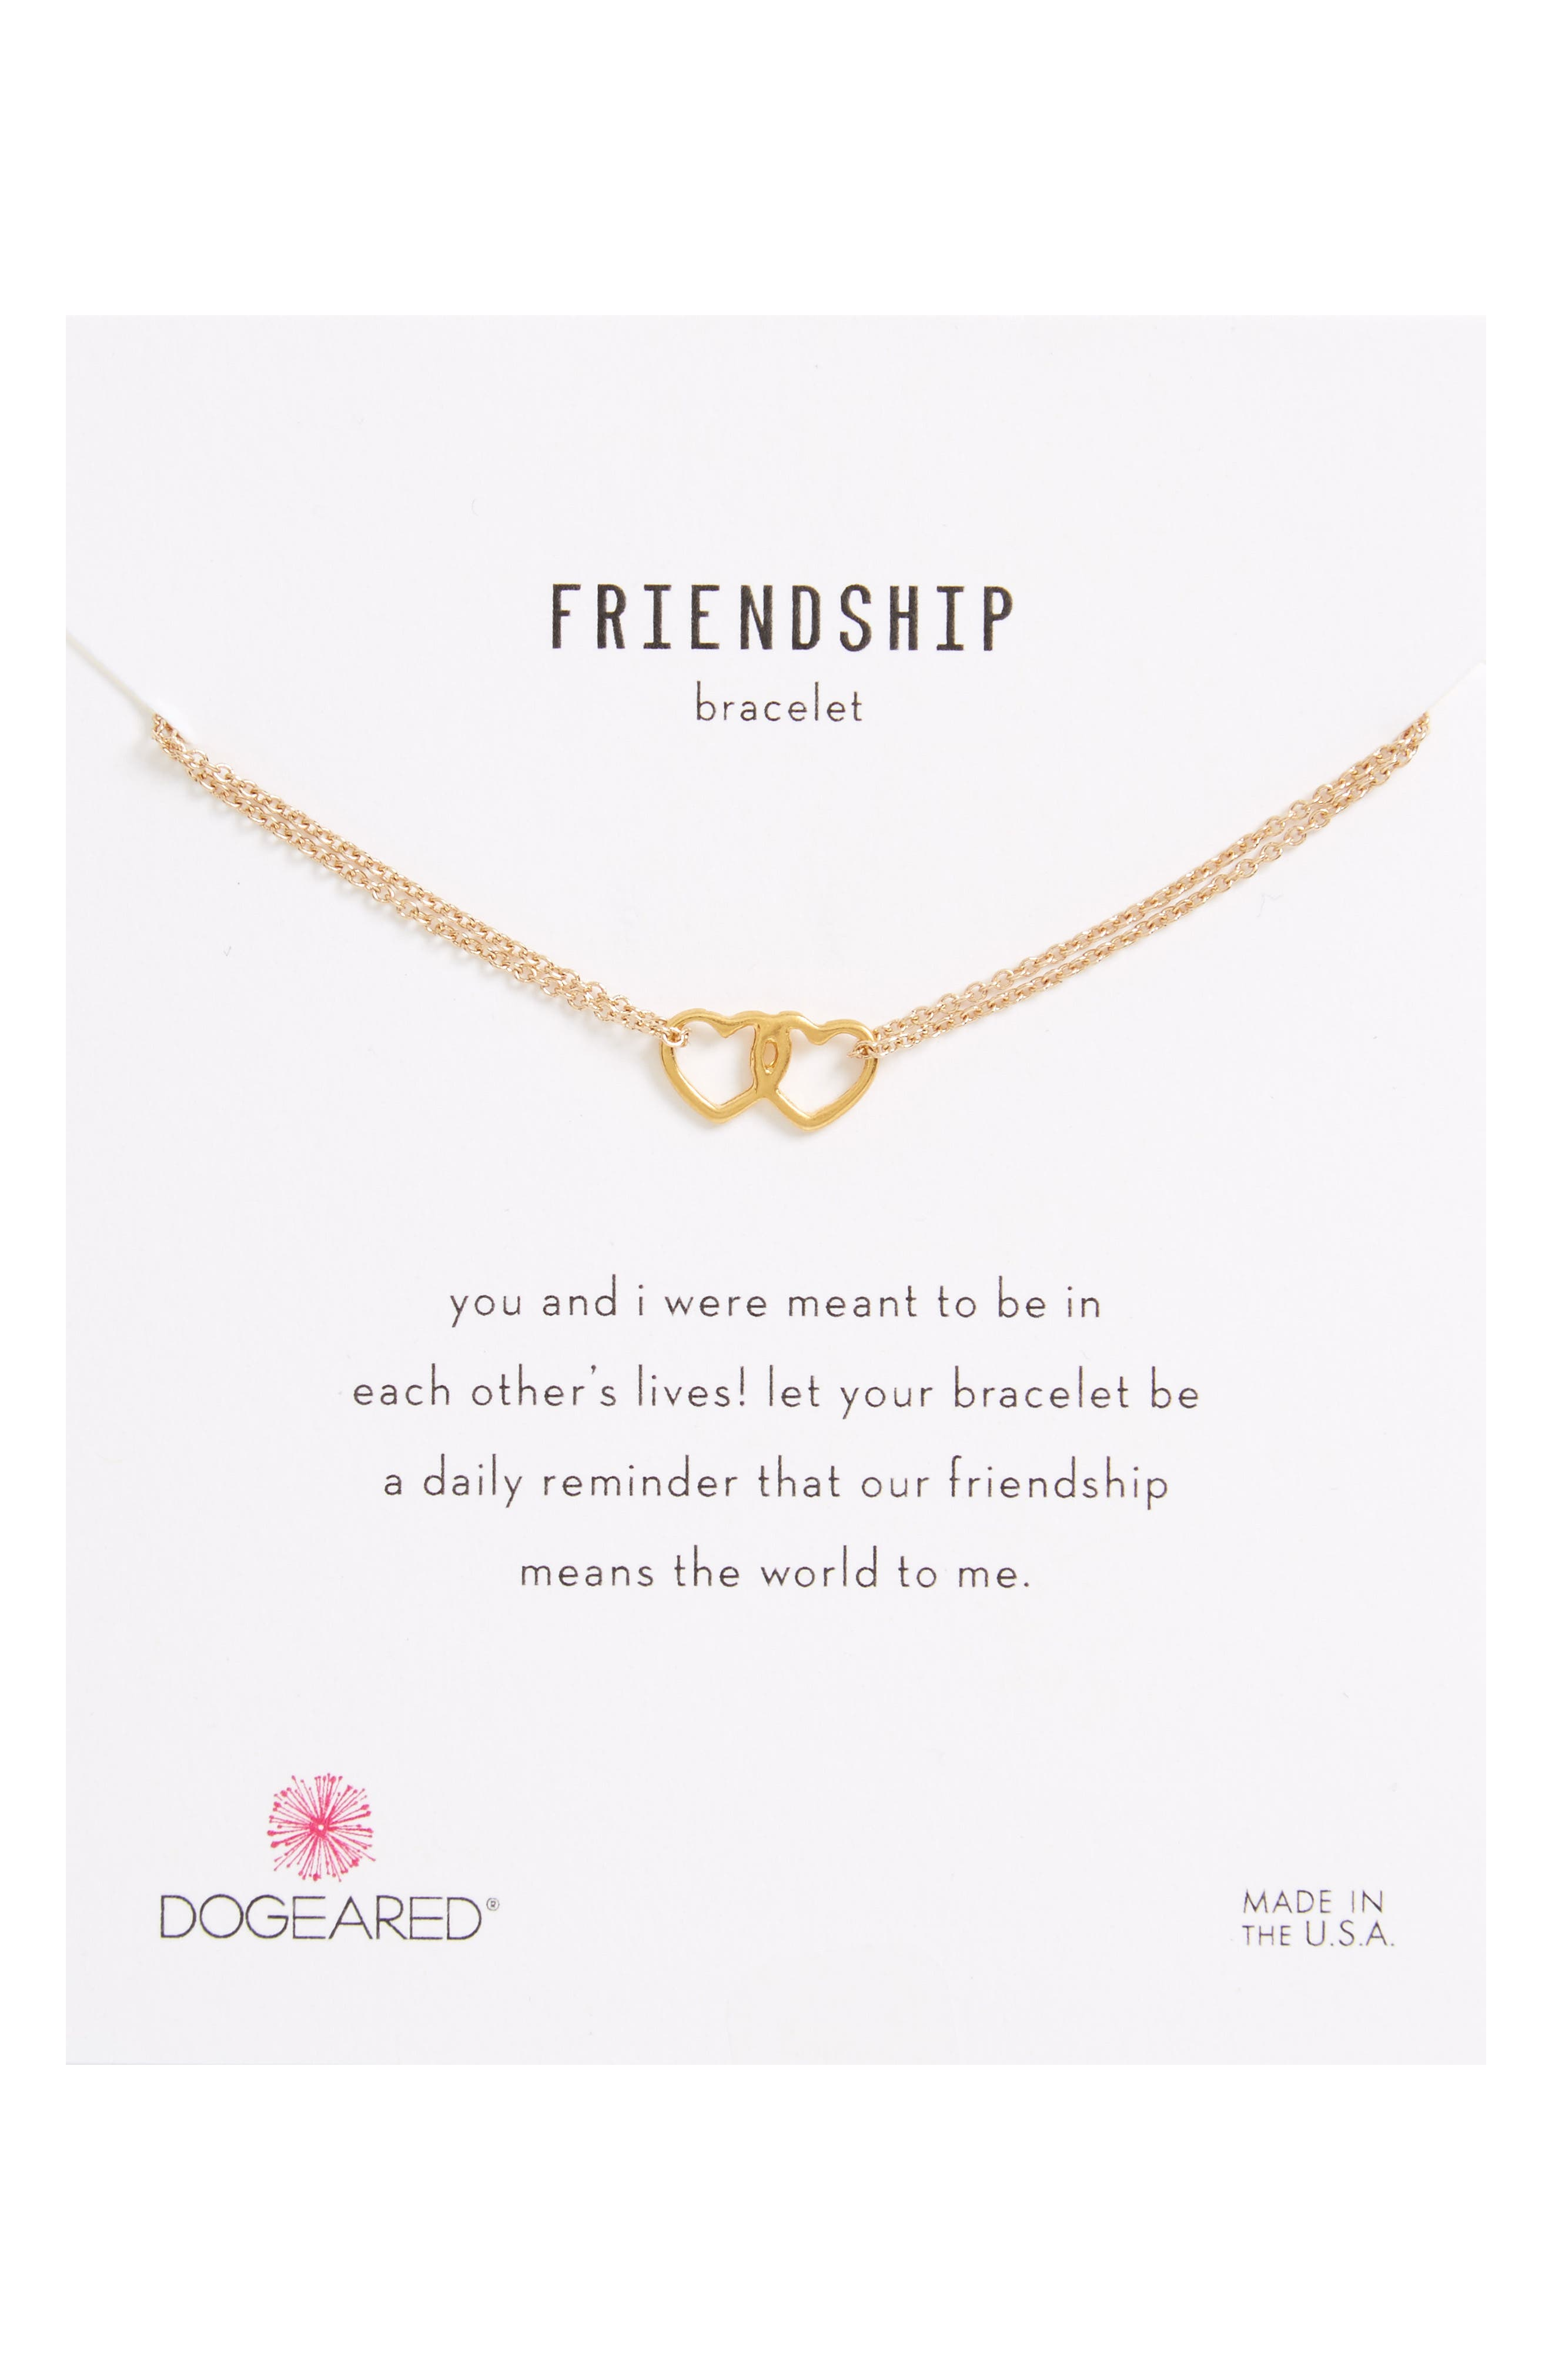 Friendship Linked Open Heart Charm Chain Bracelet,                         Main,                         color, Gold